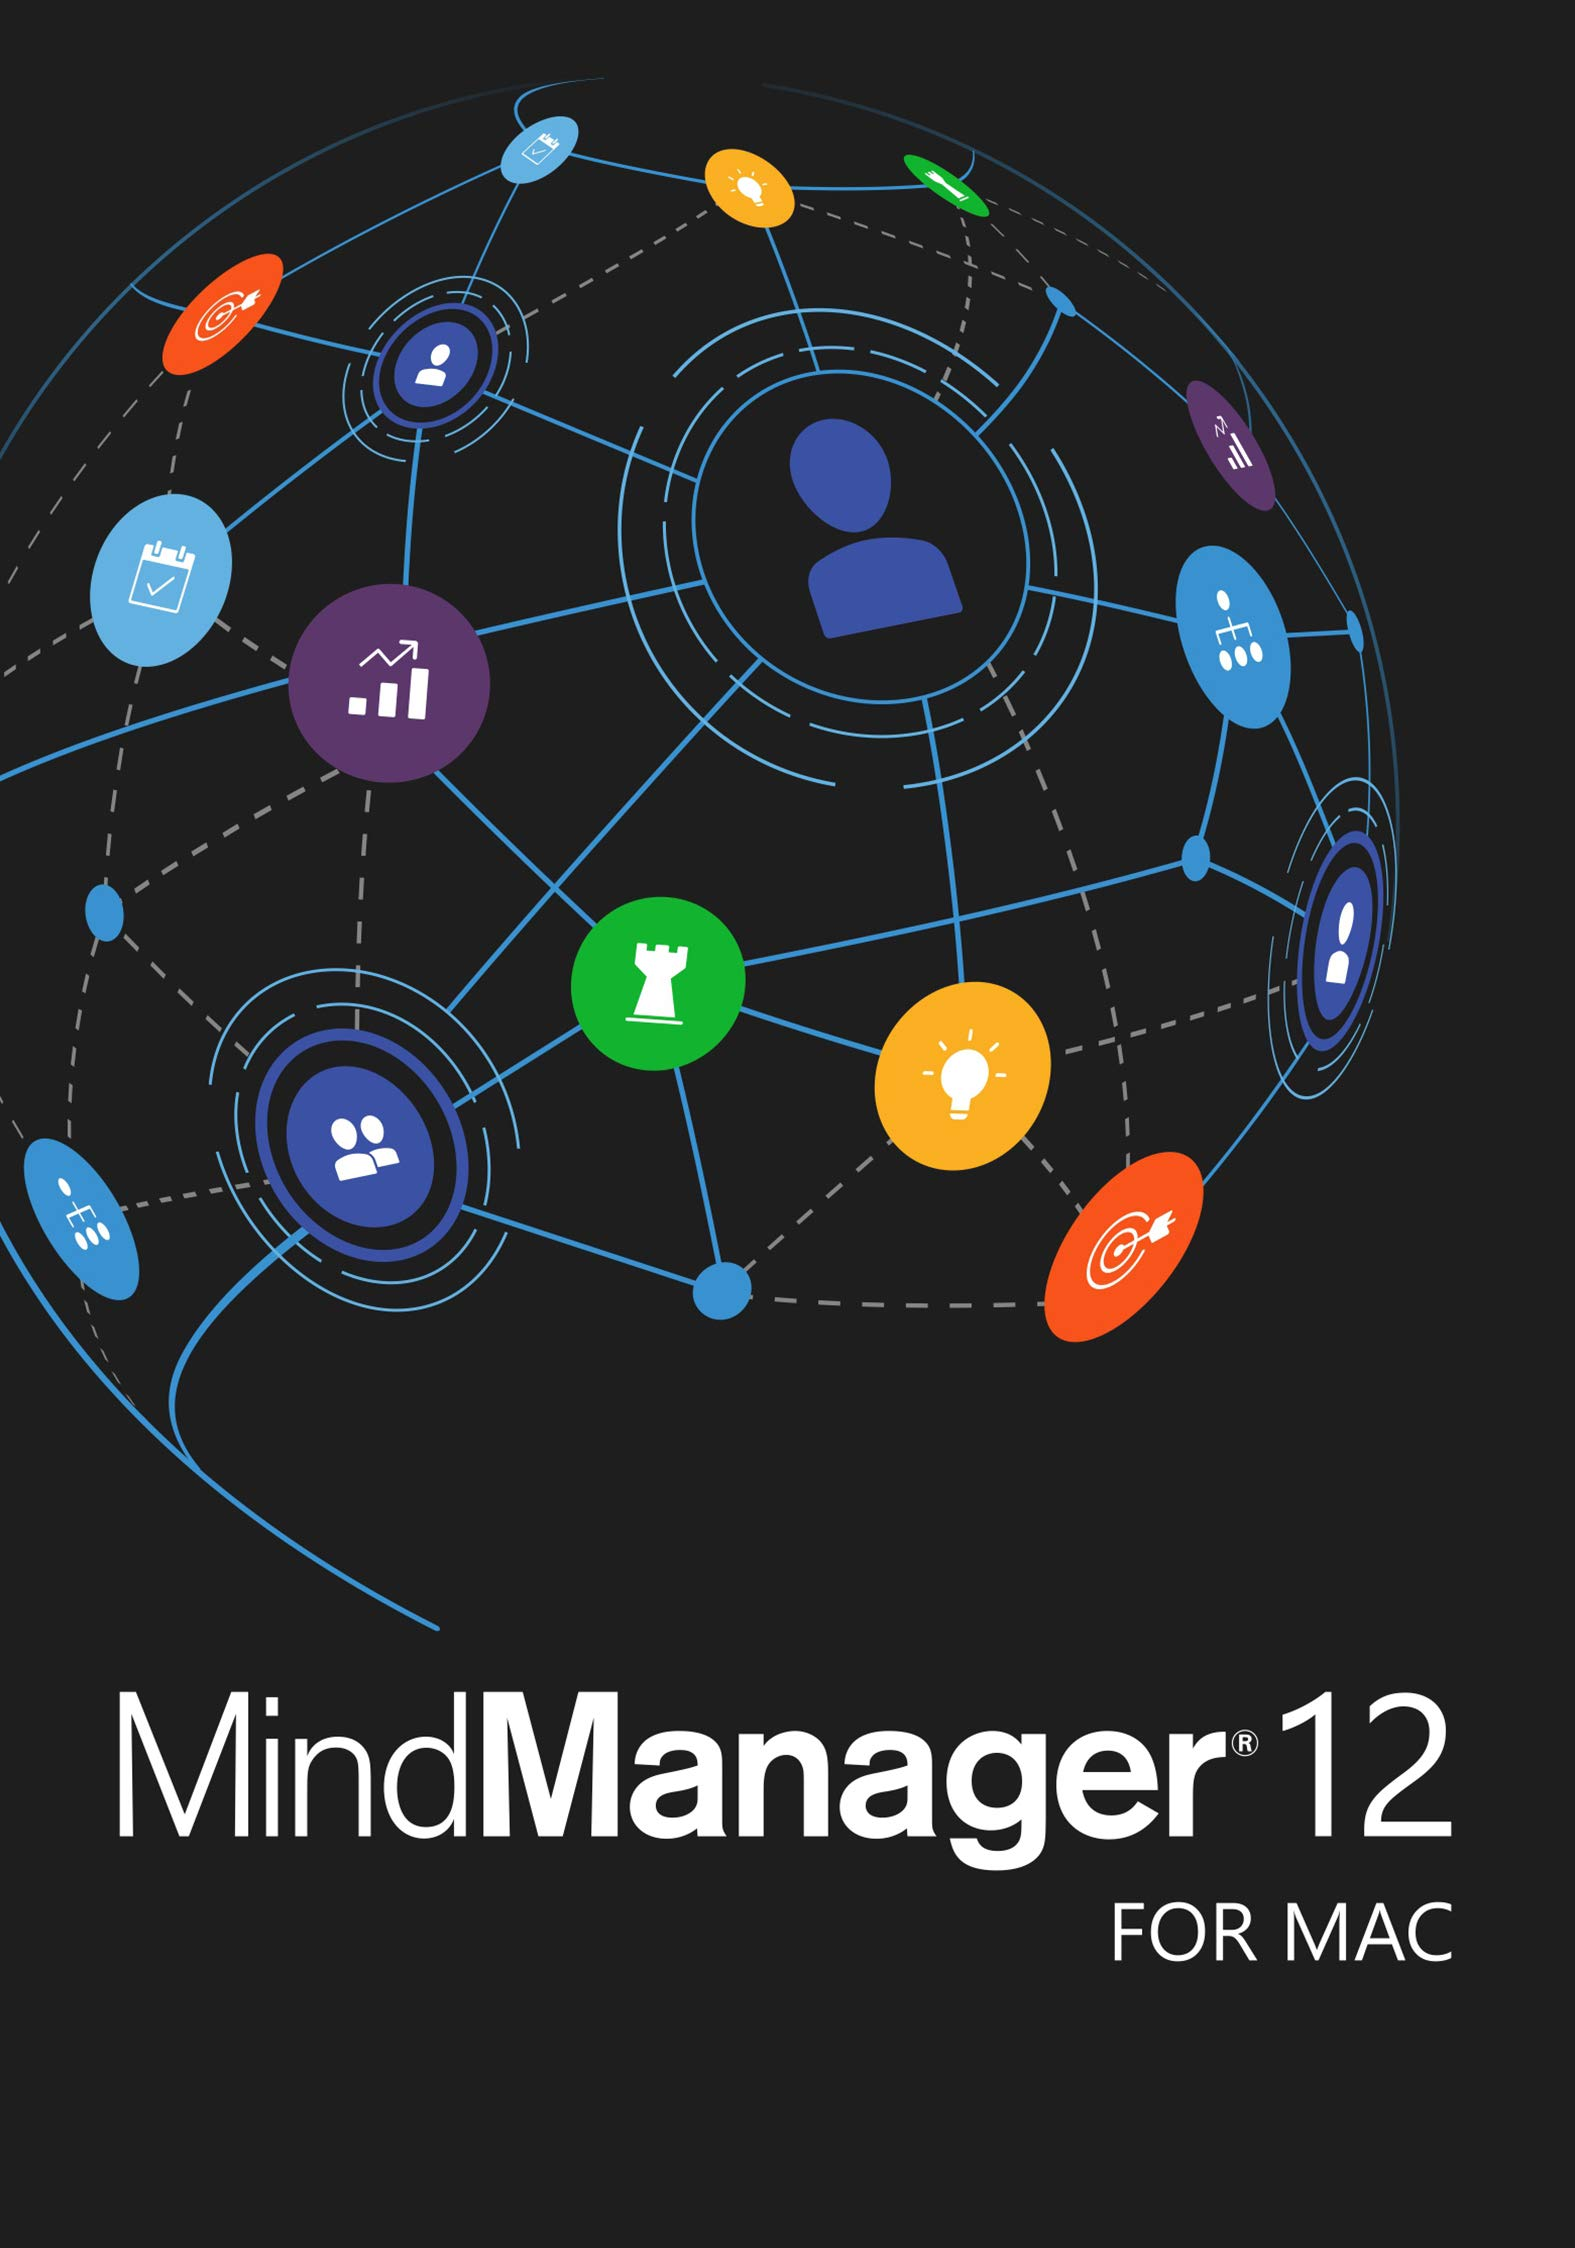 MindManager 12 for Mac - Digital Mind Mapping & Data Visualization [Mac Download] by Corel